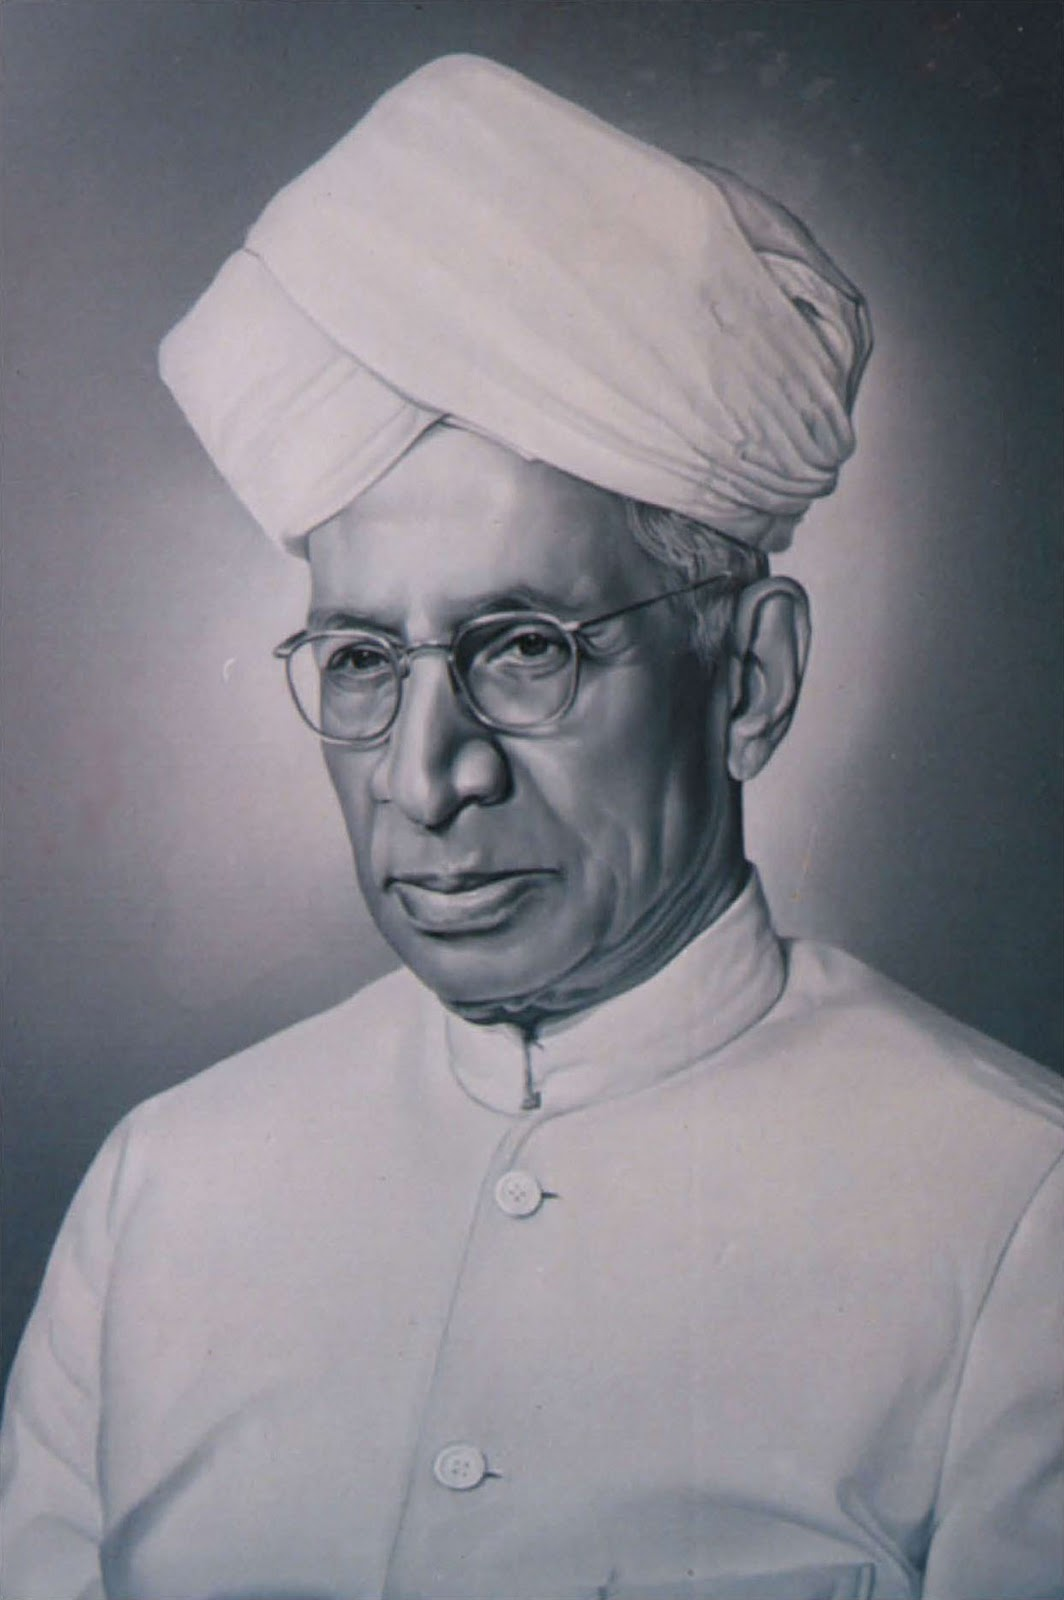 essay about dr.radhakrishnan Short essay on 'importance of water' in hindi | 'jal ka mahatva' par nibandh (245 words) short essay on 'jawaharlal nehru' in hindi.